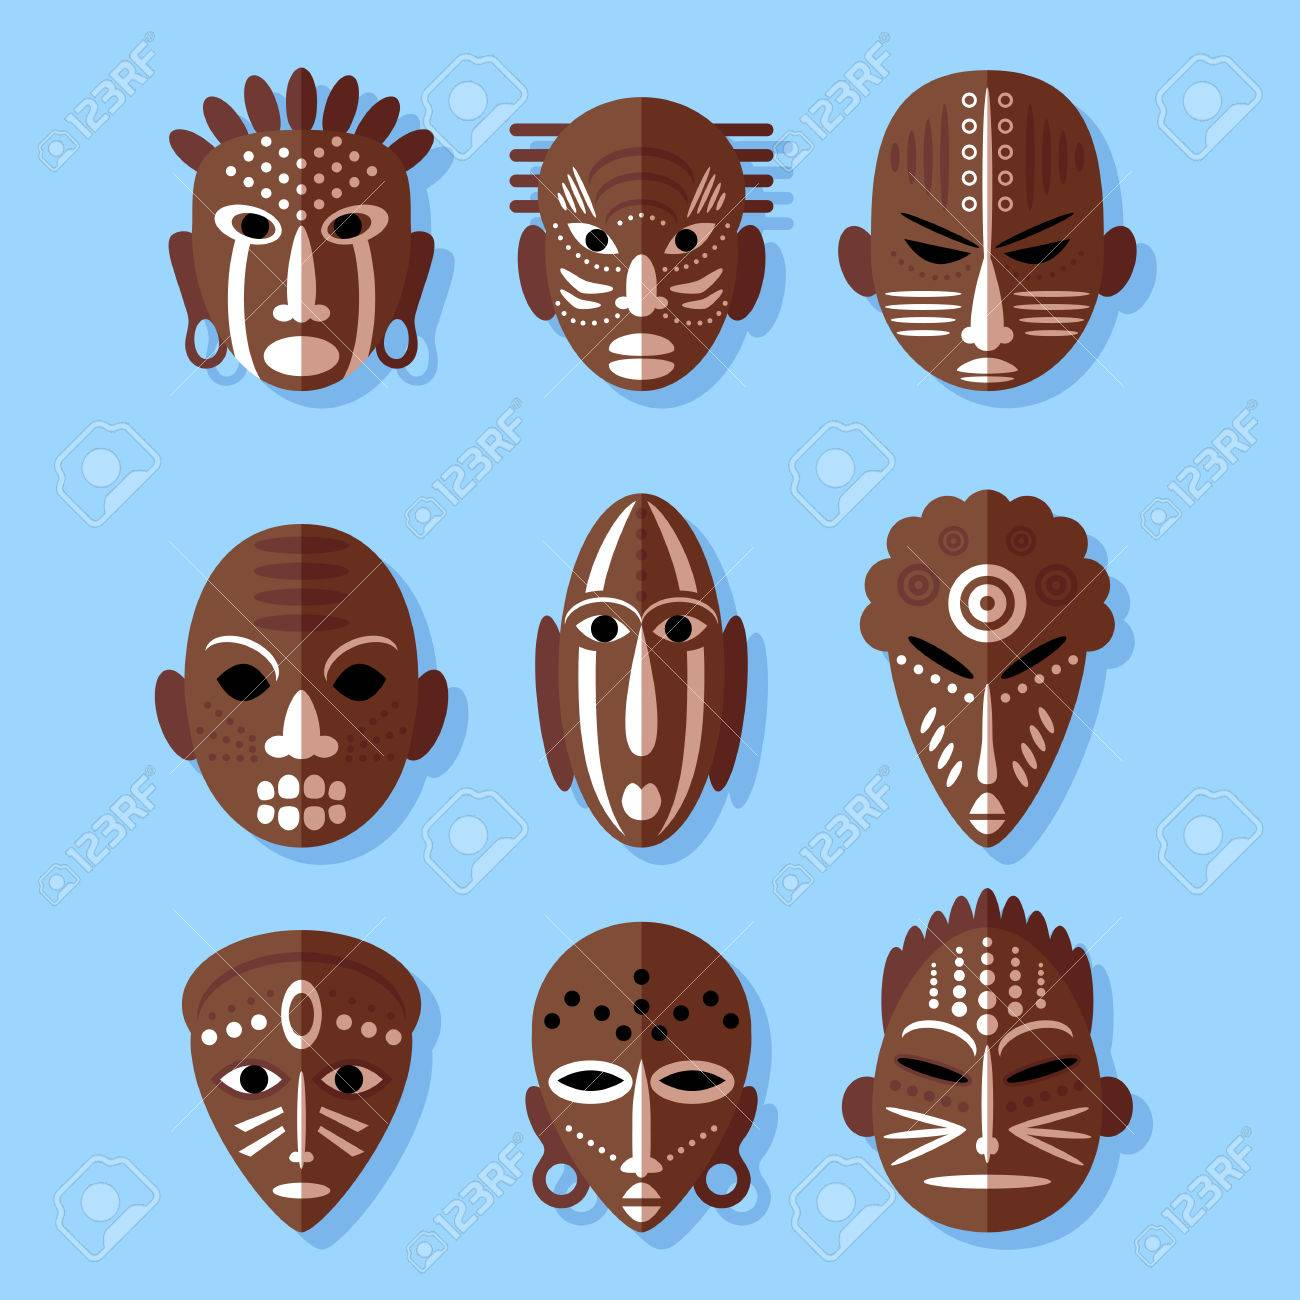 African mask icons flat design tribal ritual symbols royalty free african mask icons flat design tribal ritual symbols stock vector 36268063 biocorpaavc Image collections